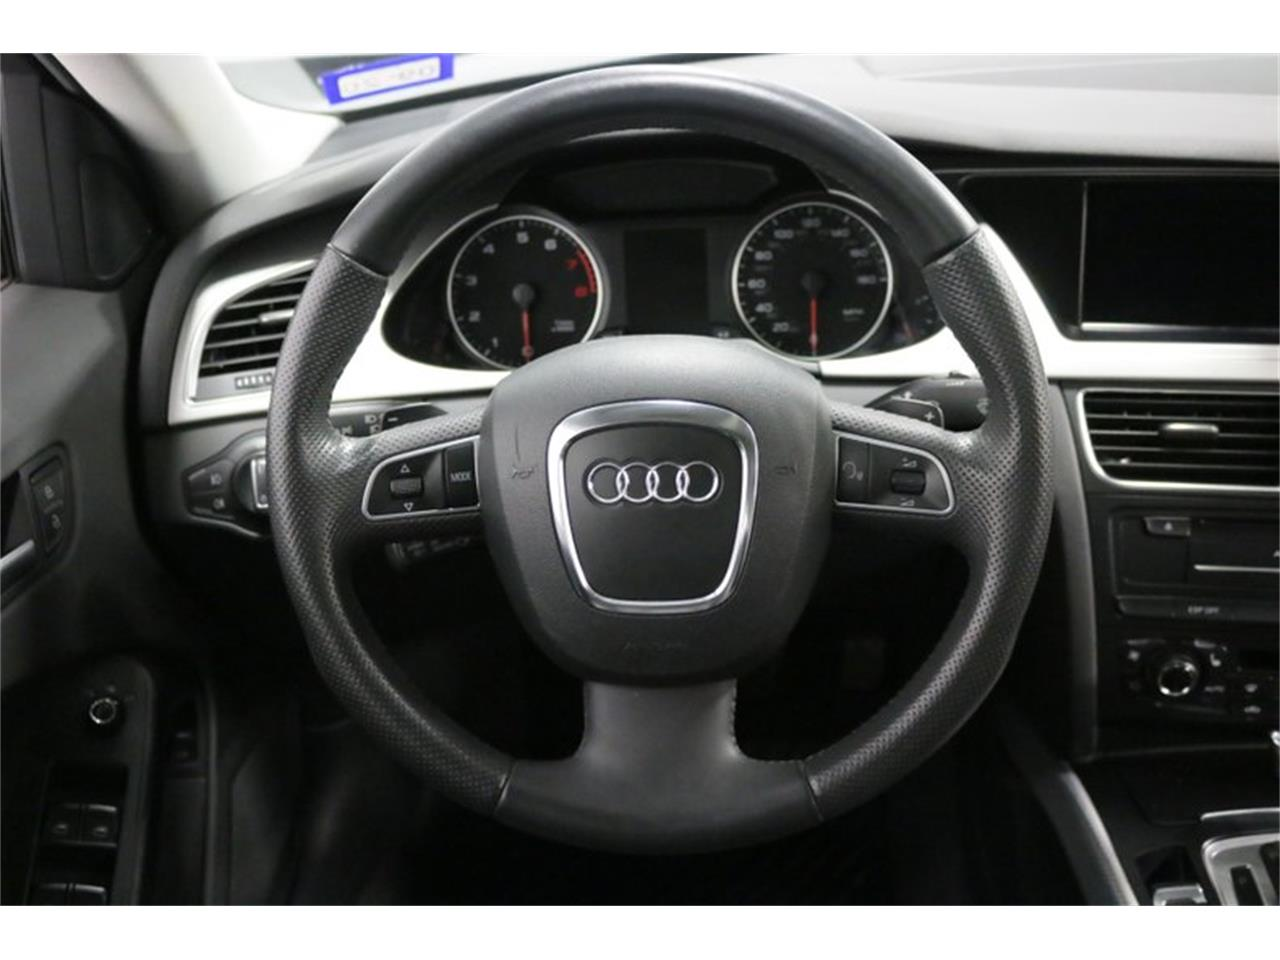 2010 Audi A4 (CC-1311411) for sale in Ft Worth, Texas